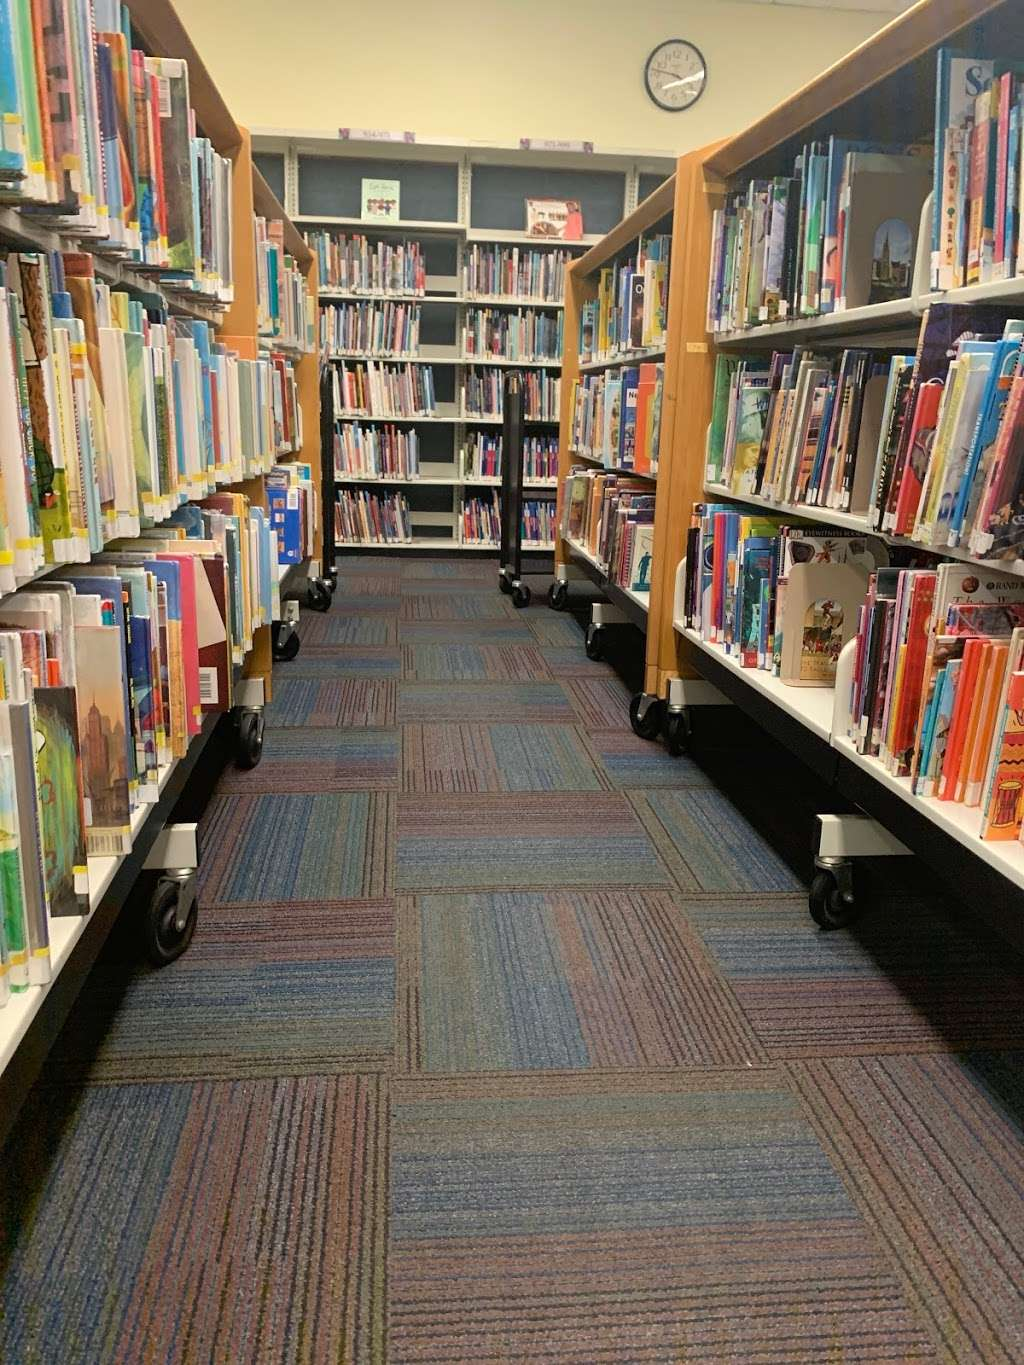 Queens Public Library at Laurelton - library  | Photo 1 of 1 | Address: 134-26 225th St, Springfield Gardens, NY 11413, USA | Phone: (718) 528-2822